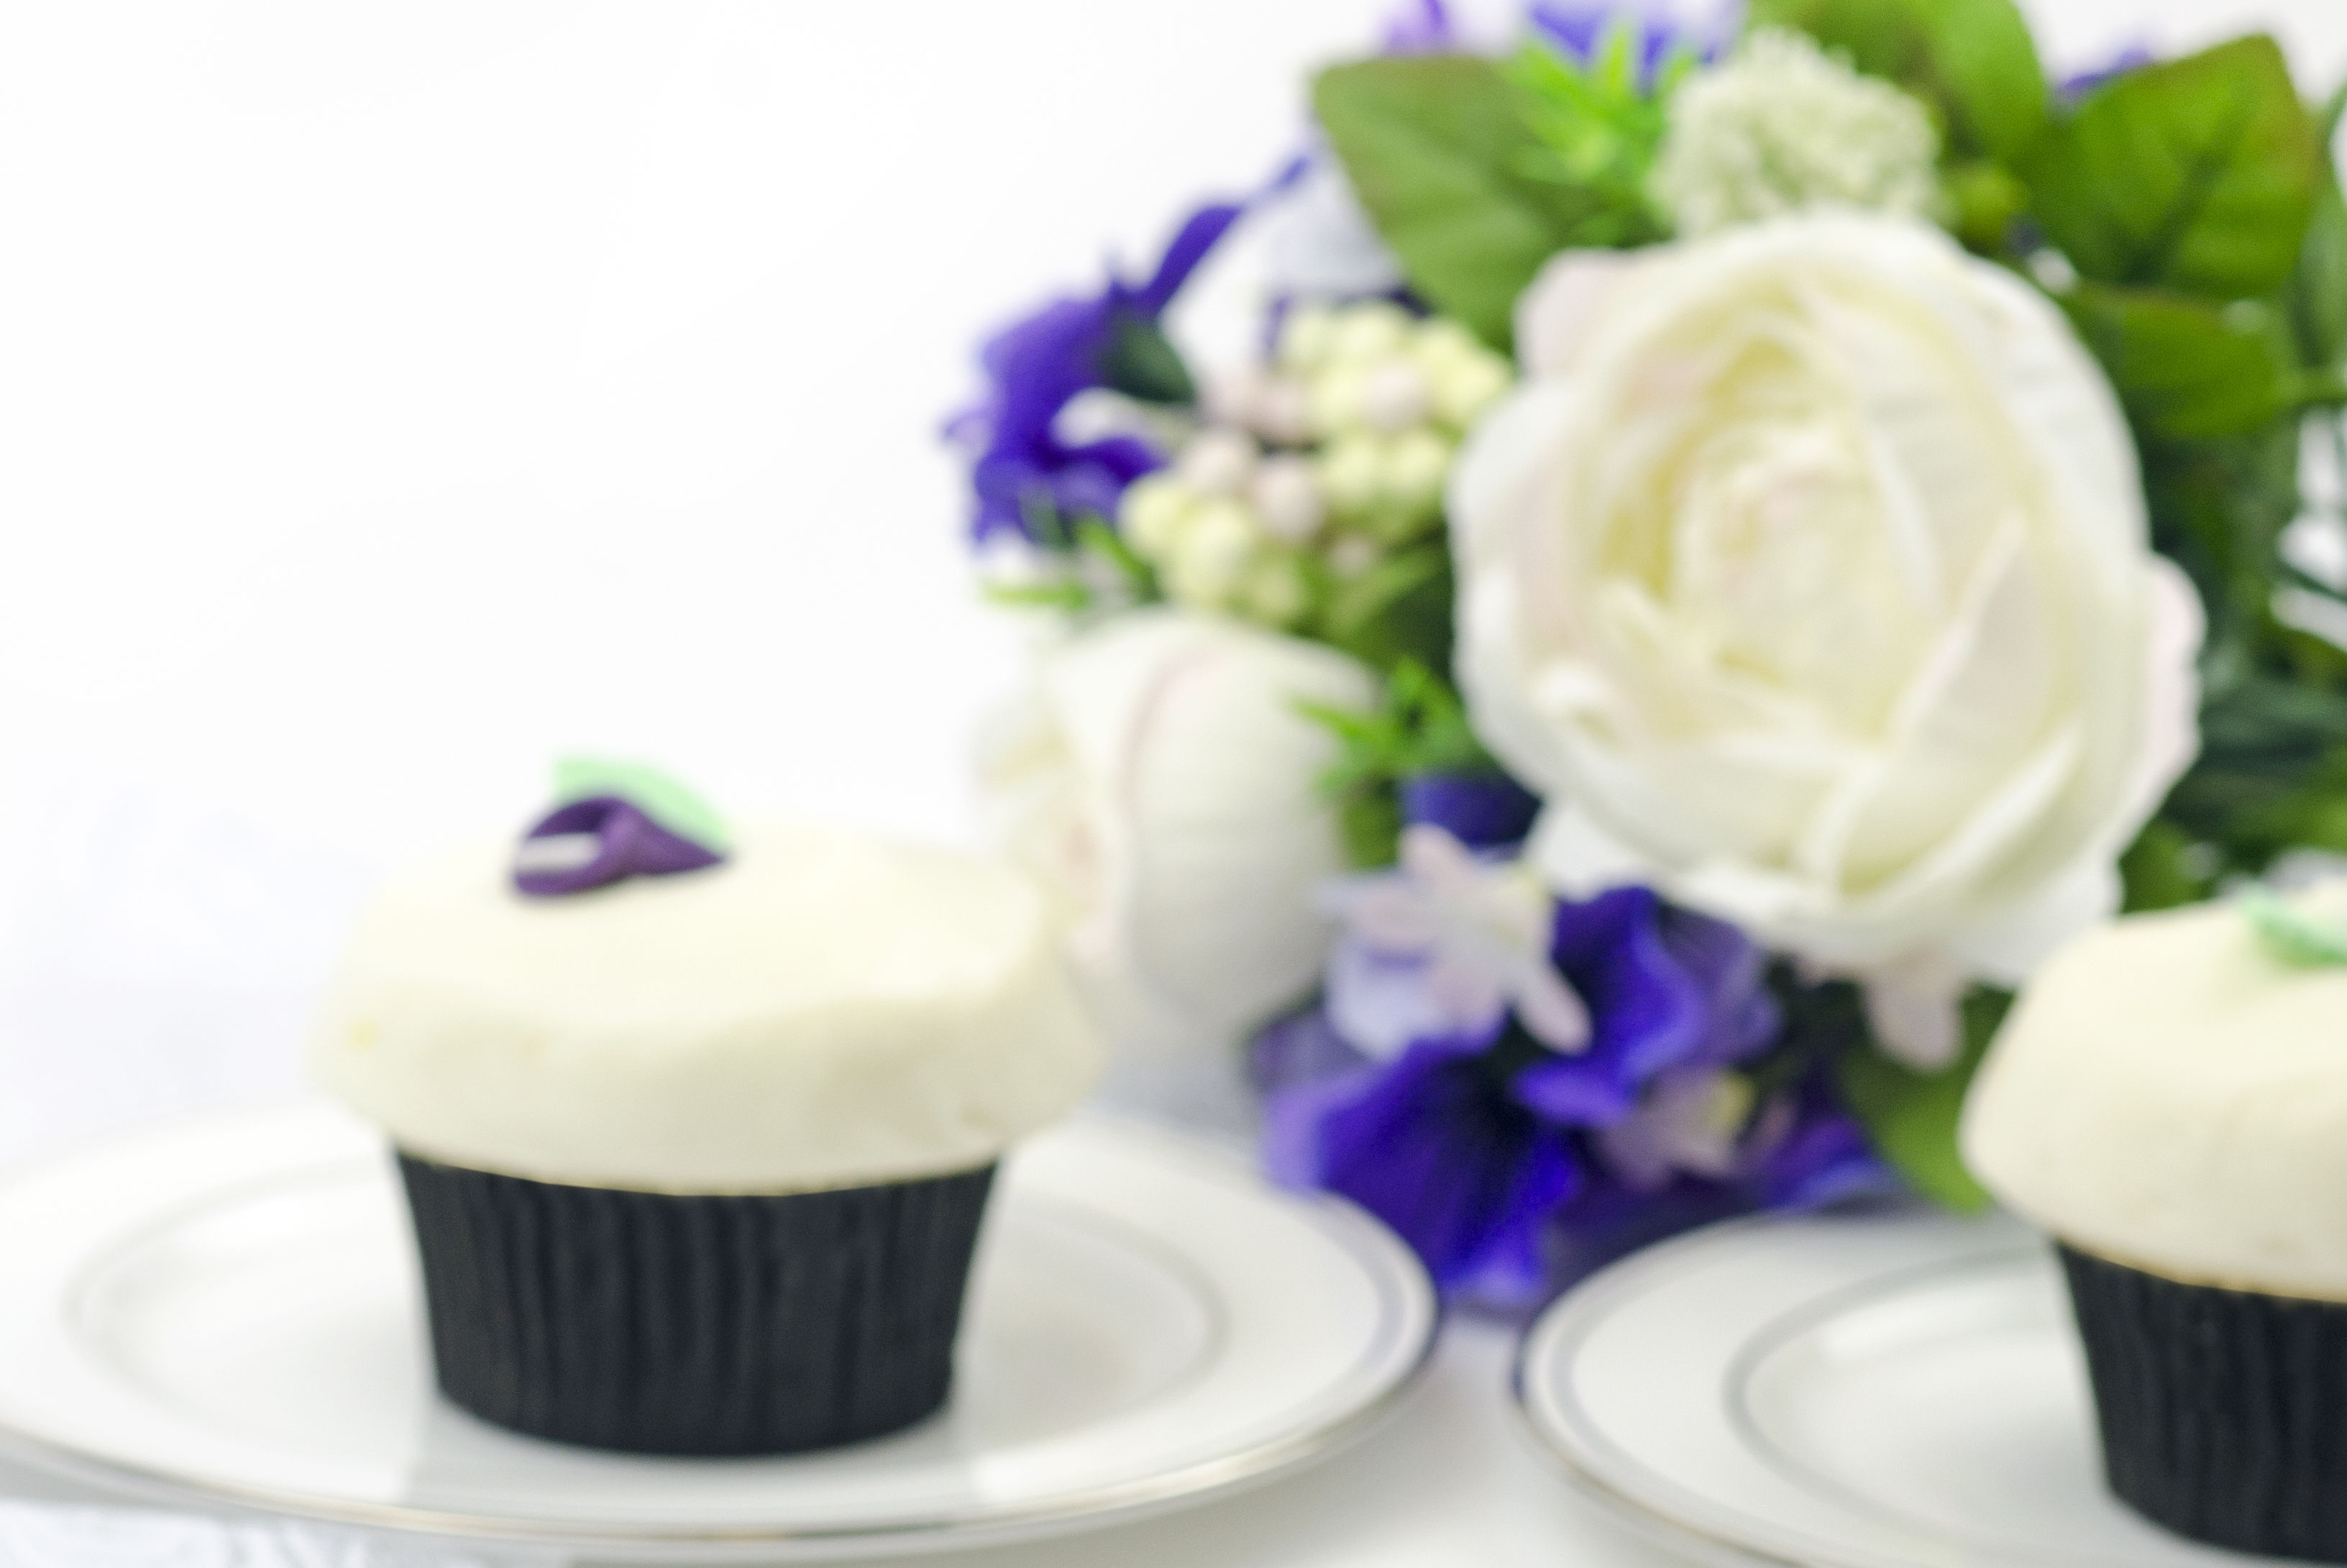 Crave s royal wedding cupcake v038gv